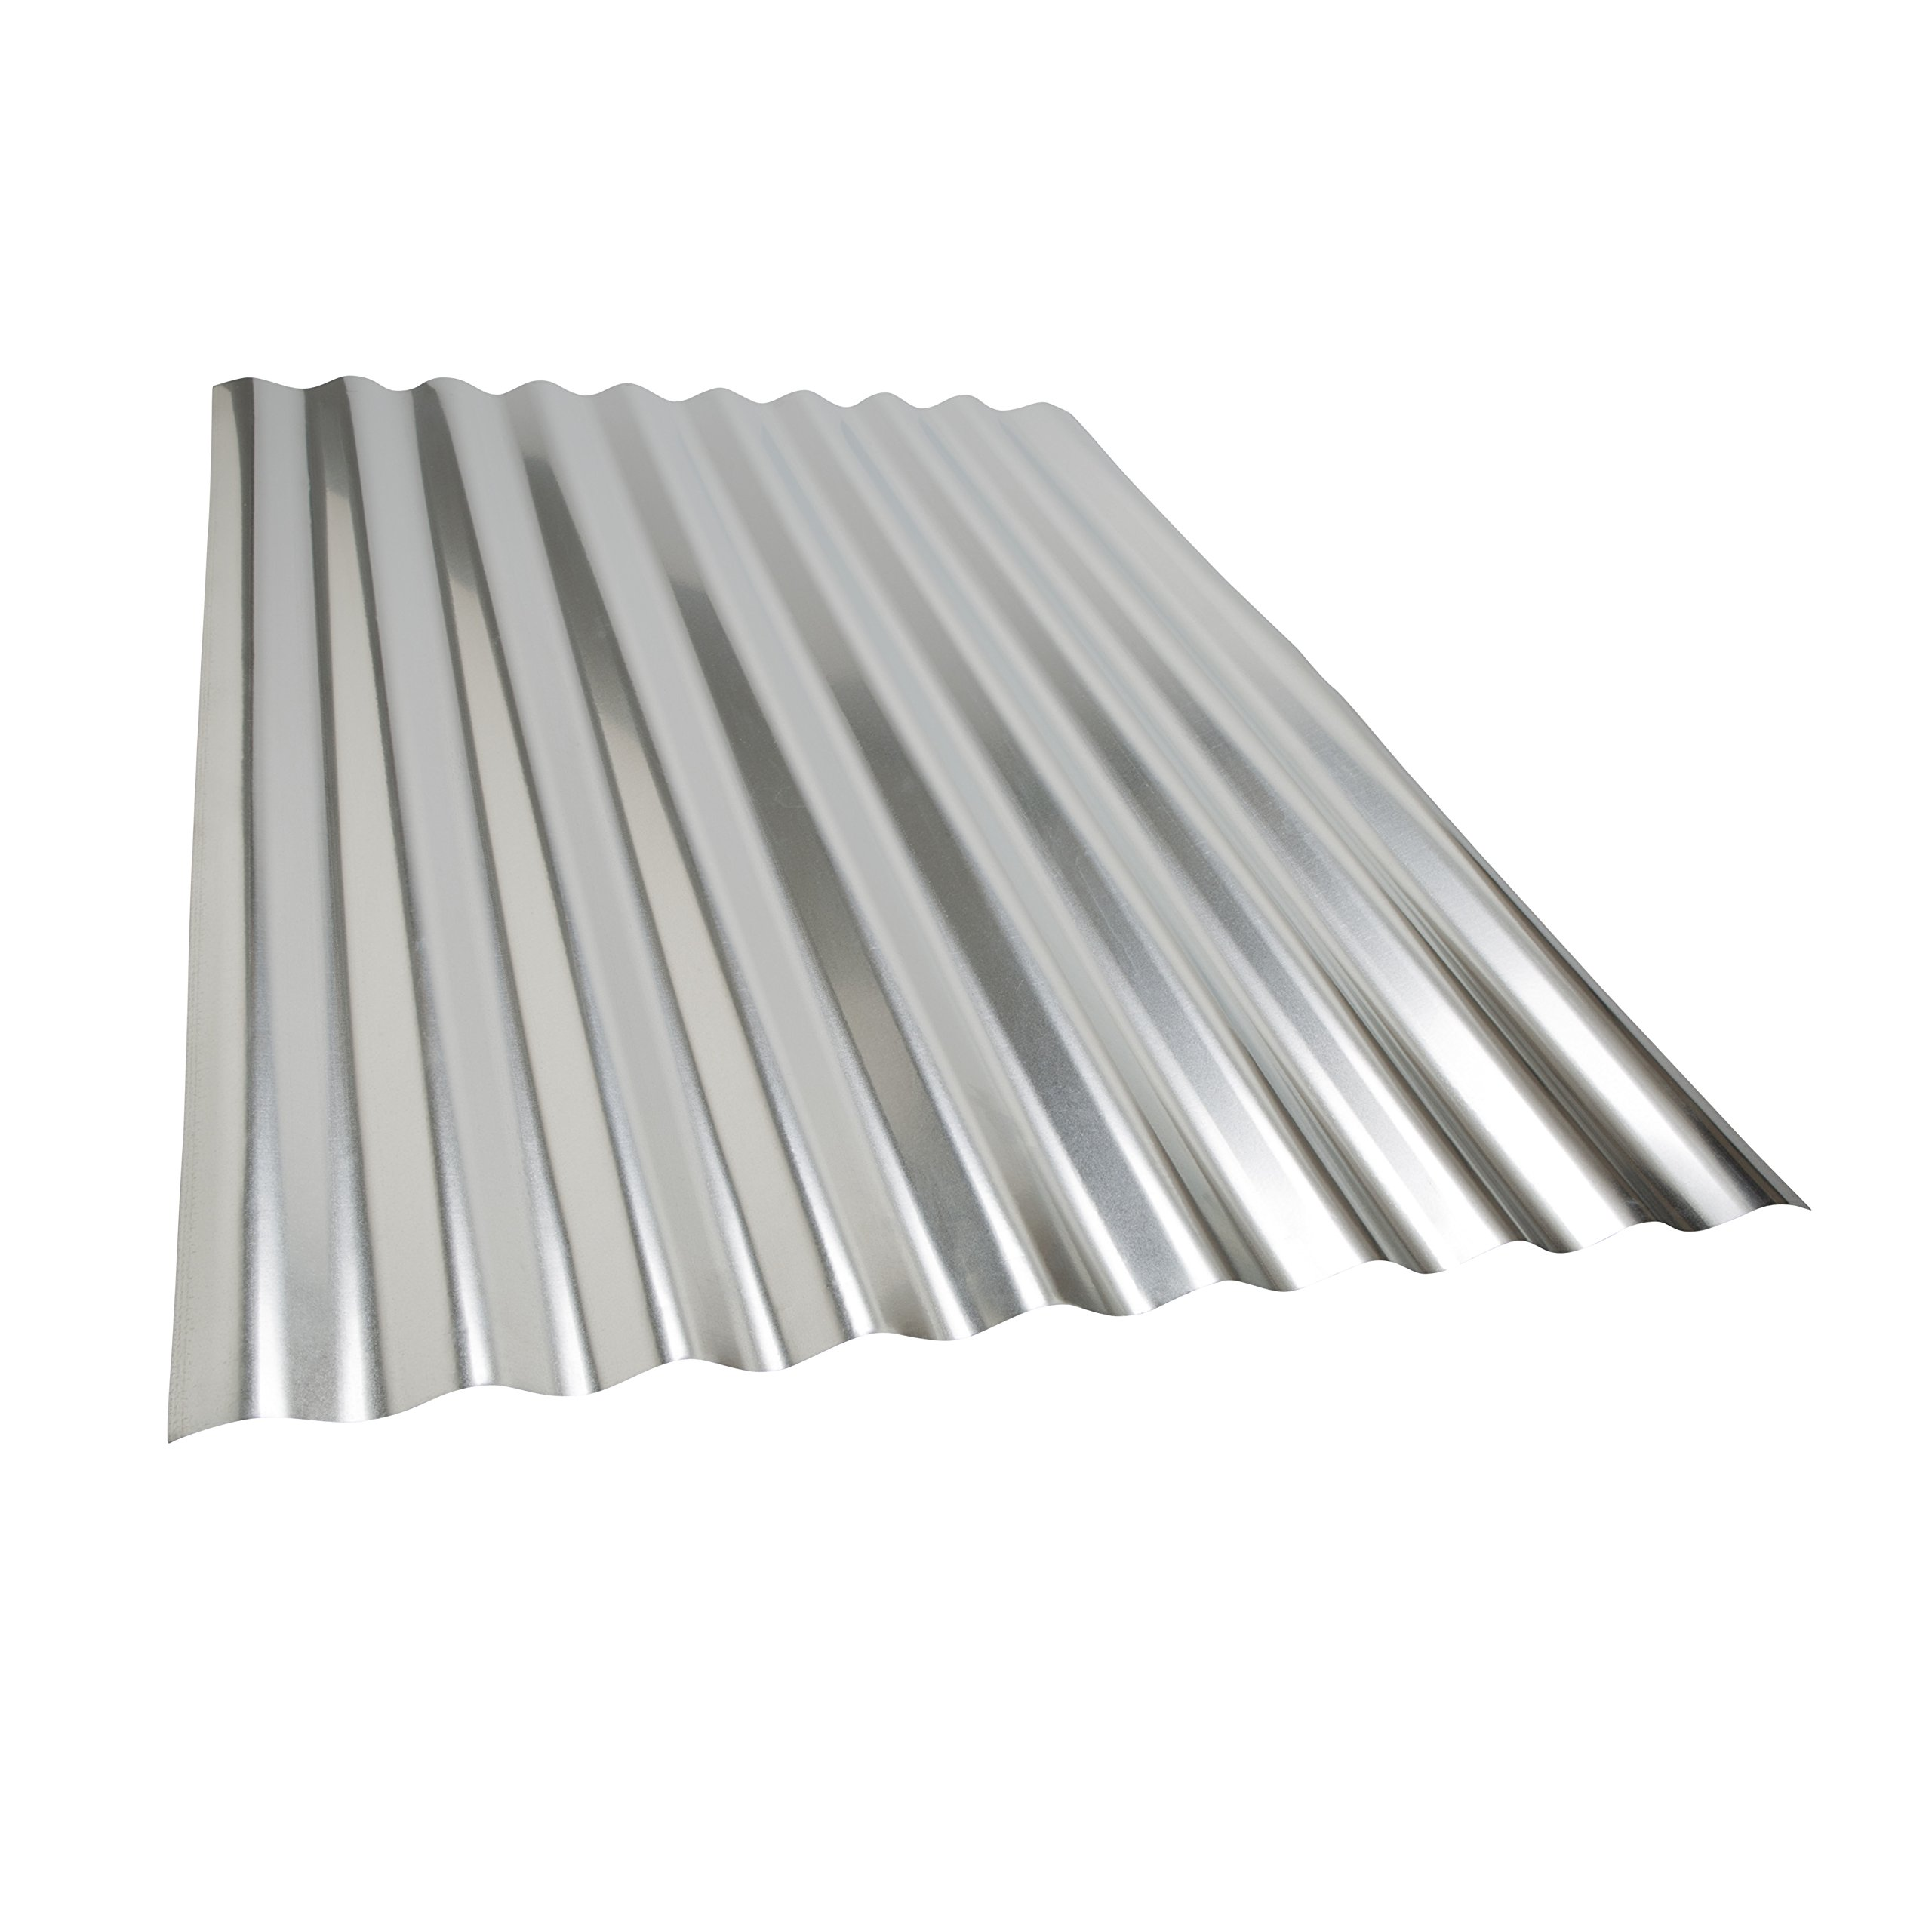 Amerimax Home Products 4736011001 Corrugated Metal 3' Project Panel, 3 Piece